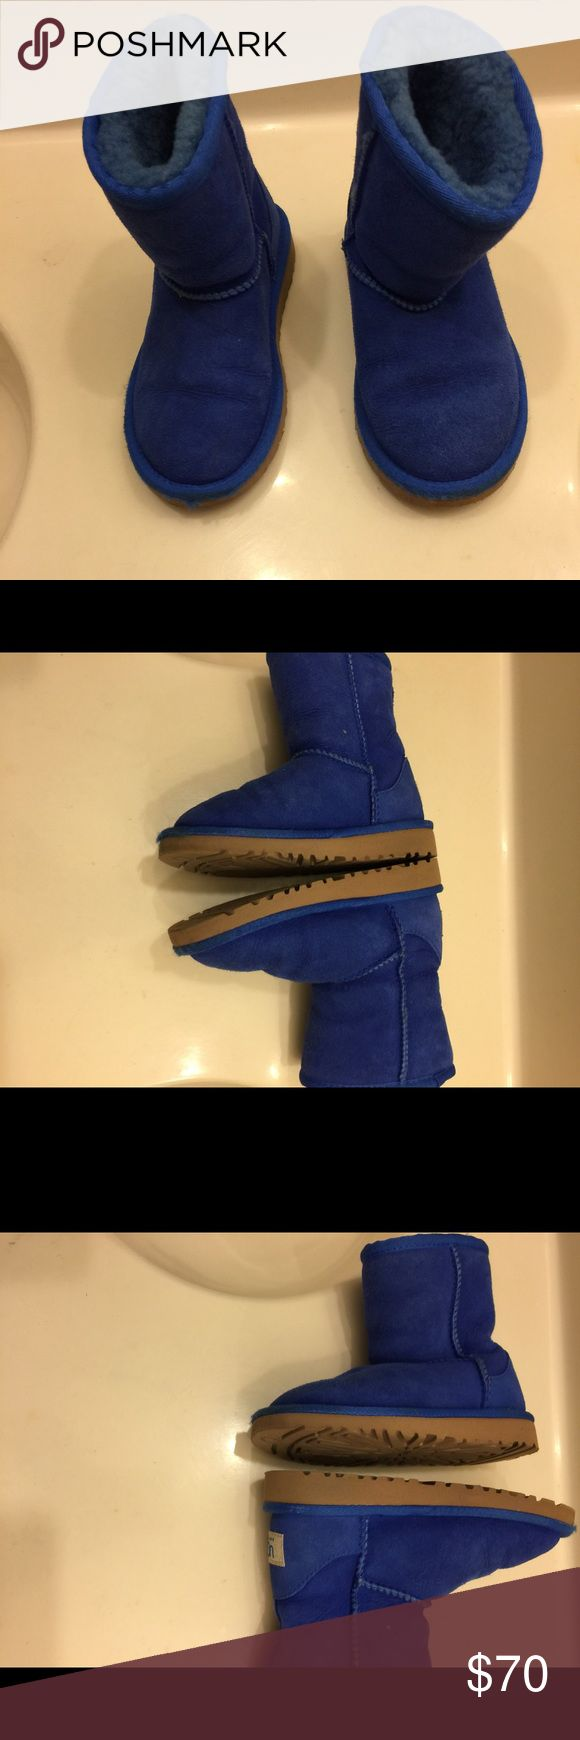 Authentic  Kids UGG in Royal Blue. Authentic Kids Ugg Australia Boots in excellent preowned condition.  Upper genuine sheep skin and leather; lining sheep Skin. Size:10  Color:Royal Blue UGG Shoes Boots